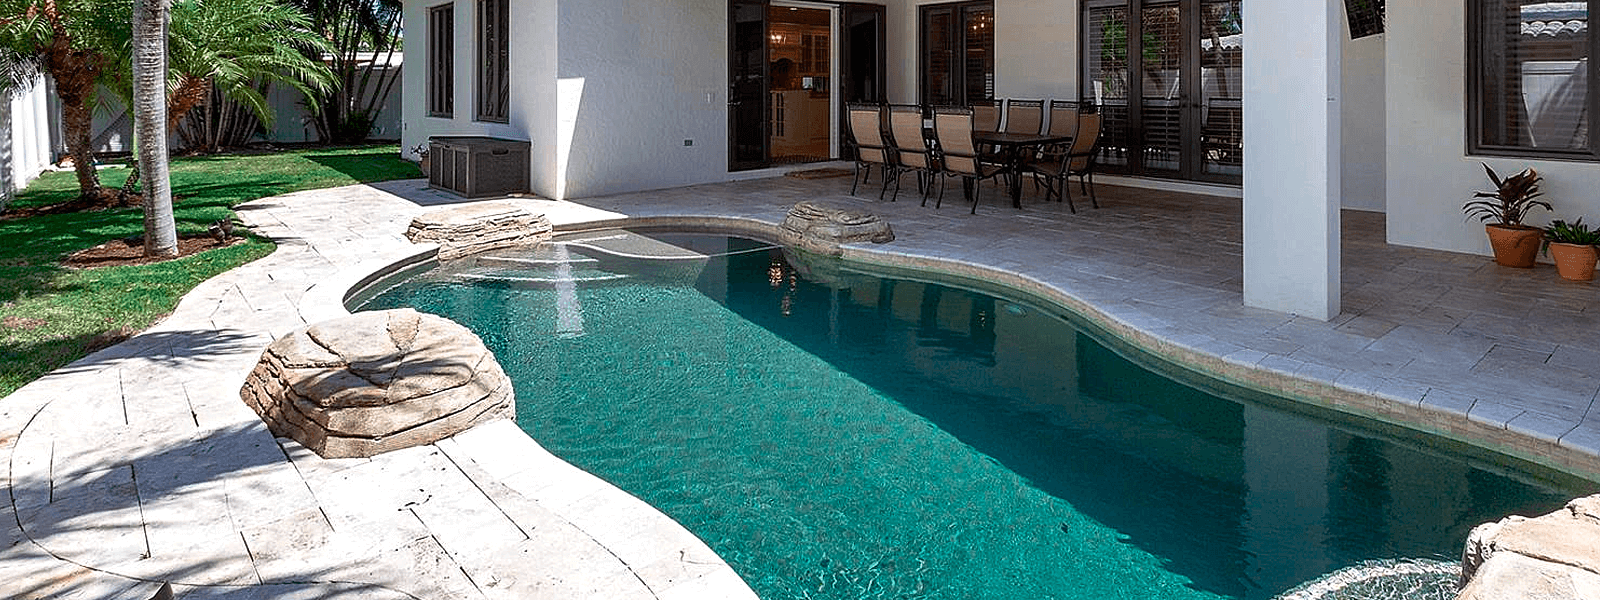 pool cleaning service in fort lauderdale florida